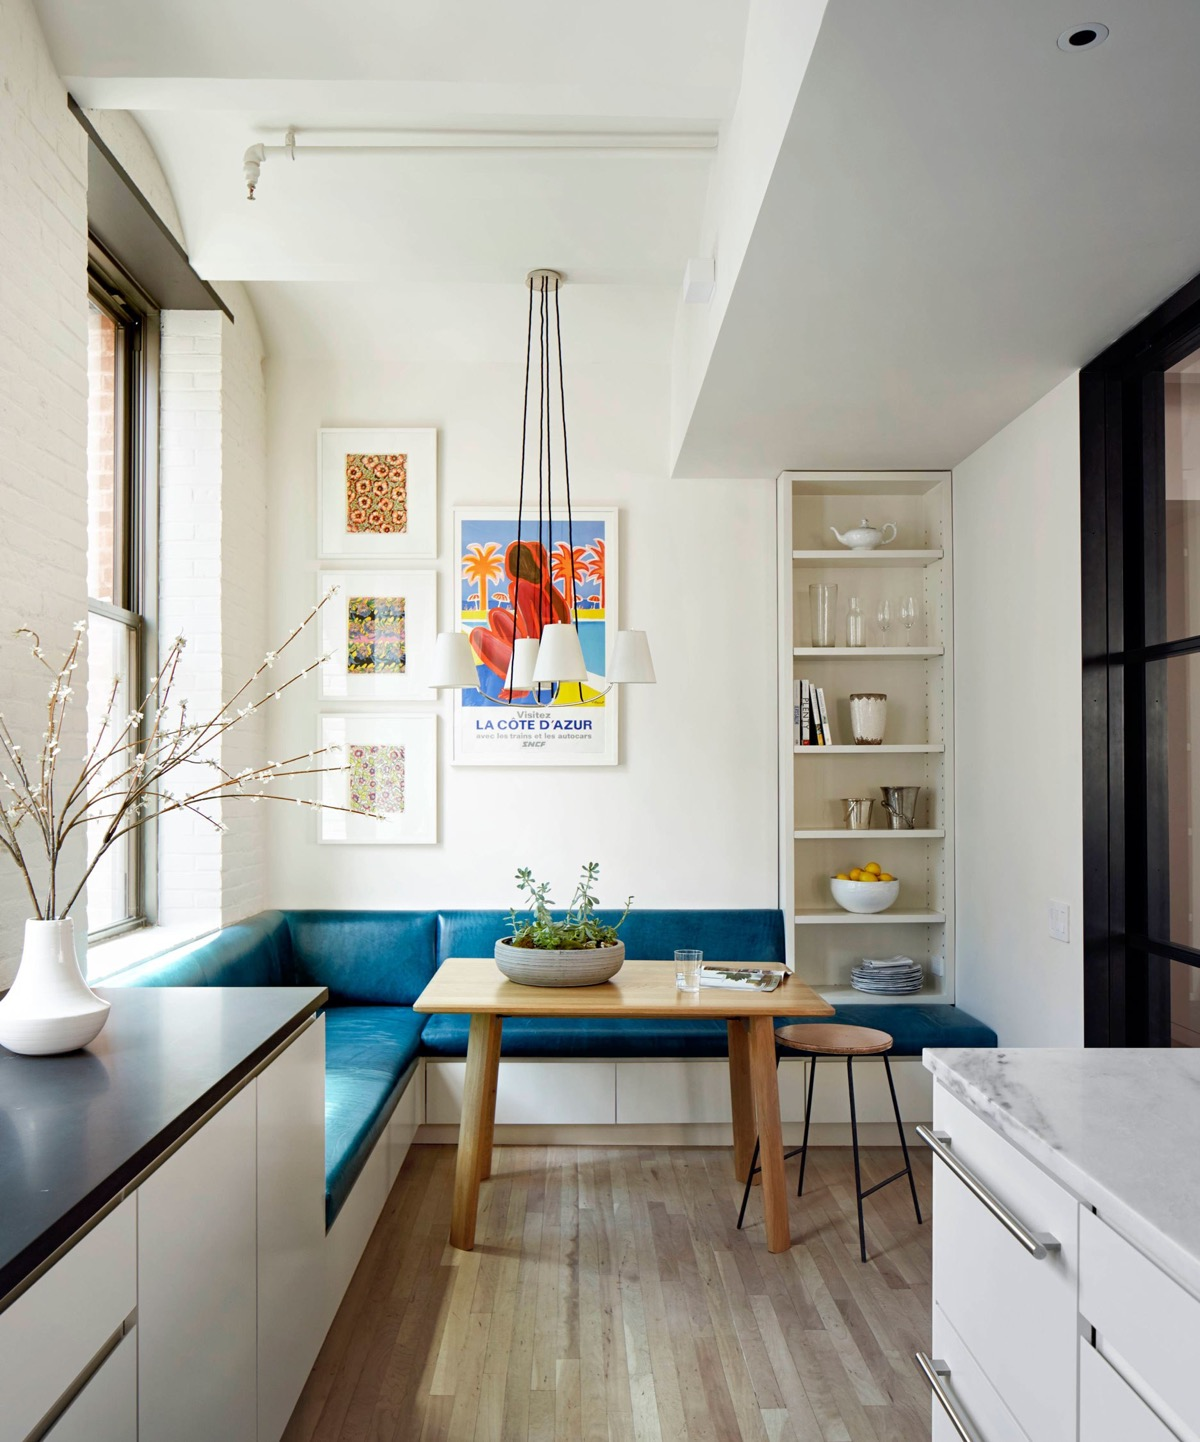 Kitchen Nooks: 22 Beautiful Breakfast Nooks That Add To Your Kitchen's Charm